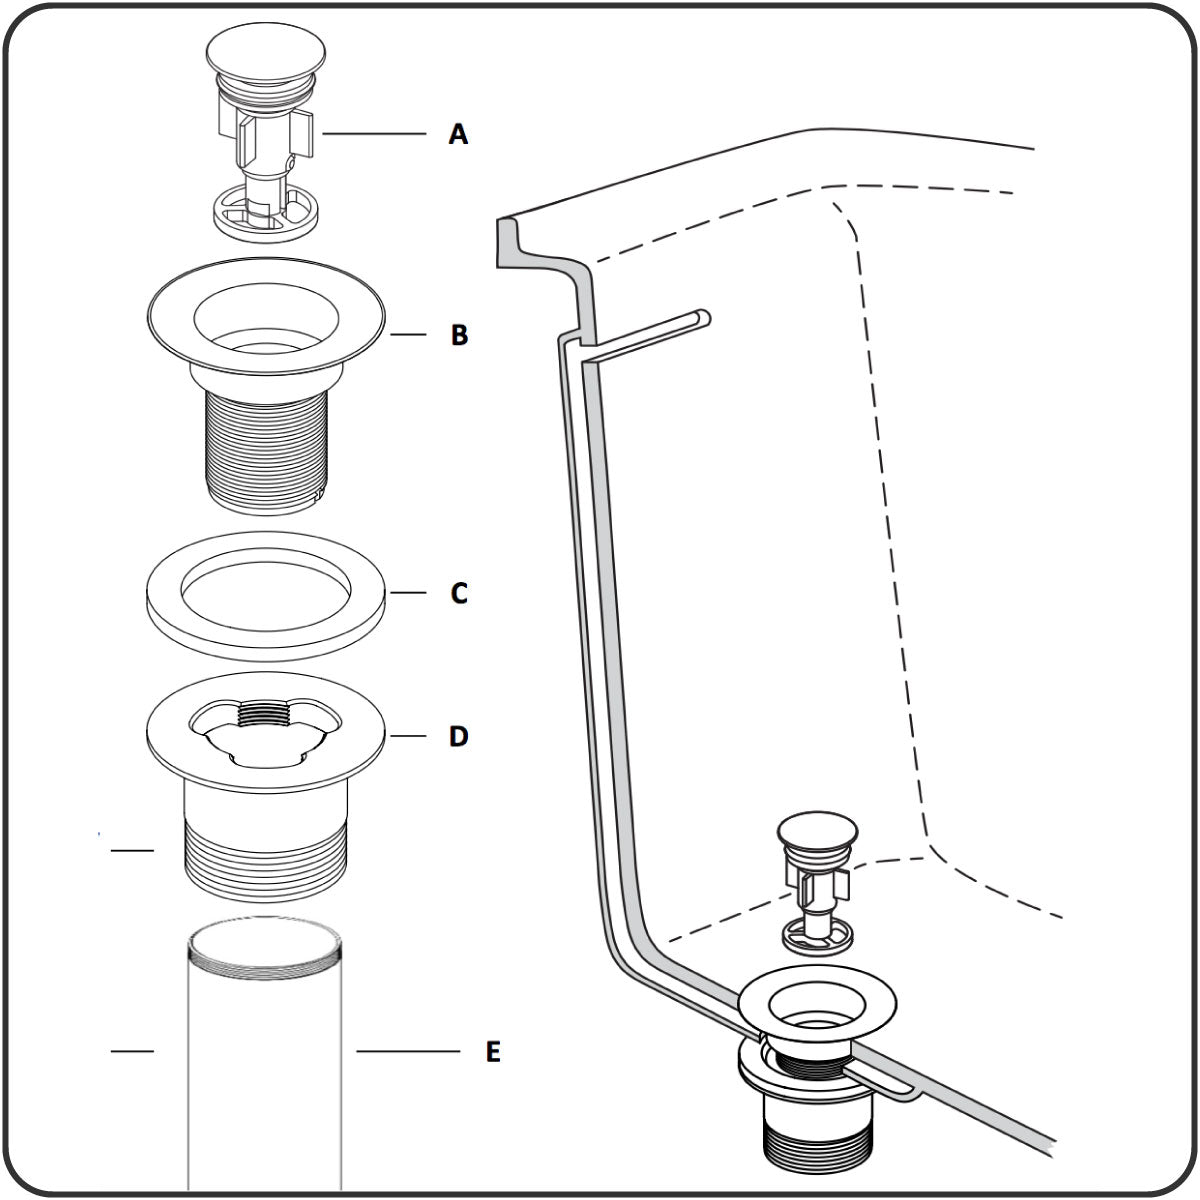 71232 Integral Overflow Tub Installation Instructions